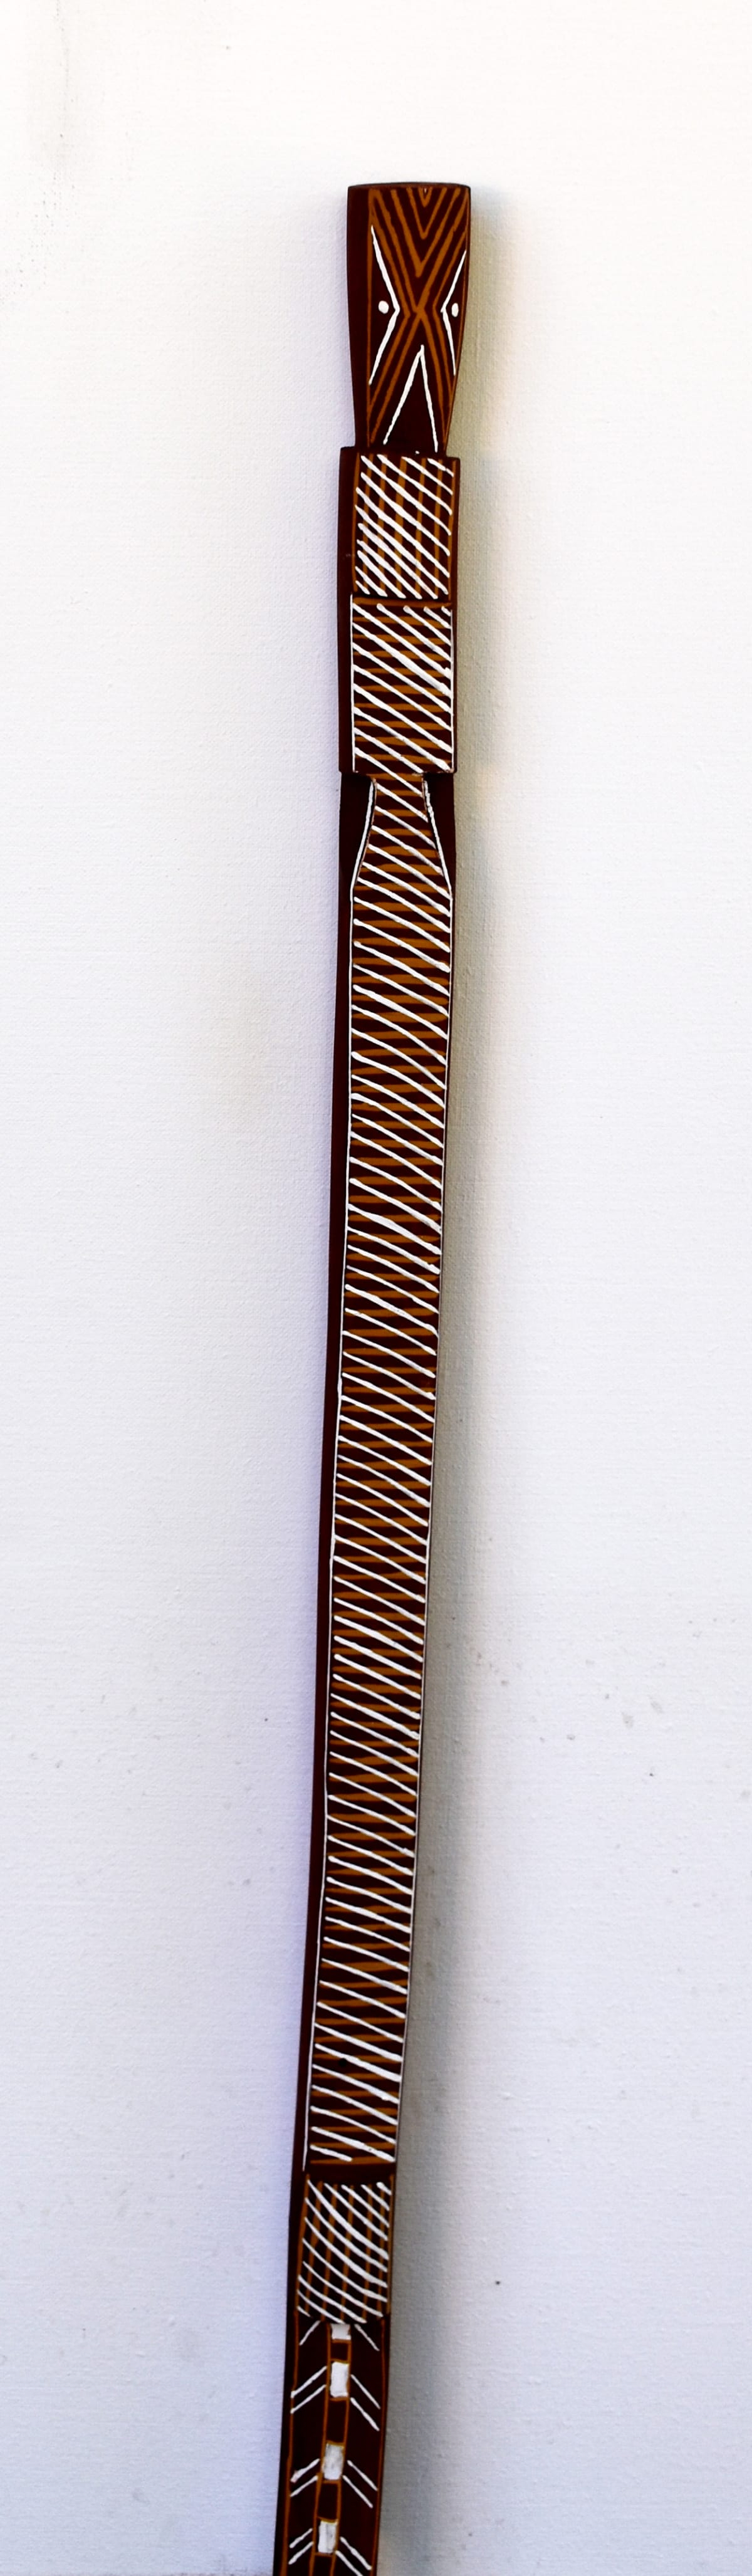 Joy Garlbin Djomi, 2018 Carved Wood & Ochre 94 x 4 x 4 cm